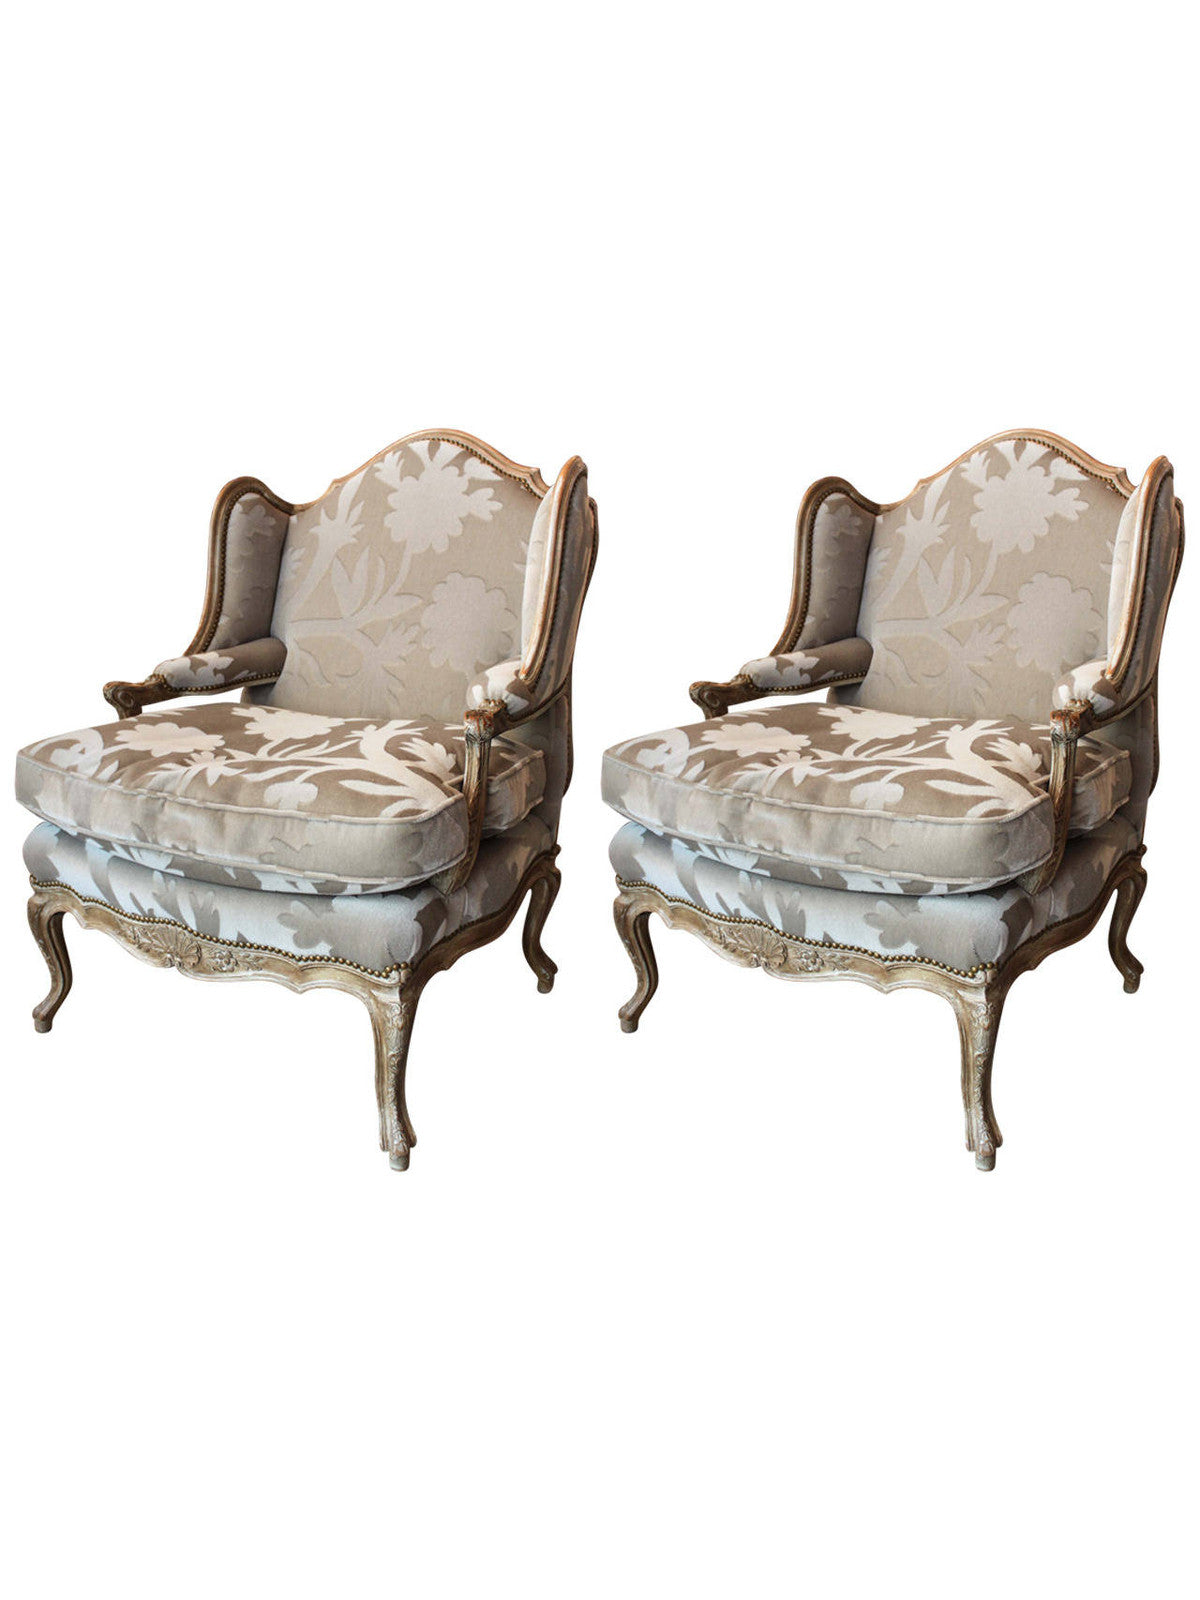 Antique French Bergere Chairs, Pair